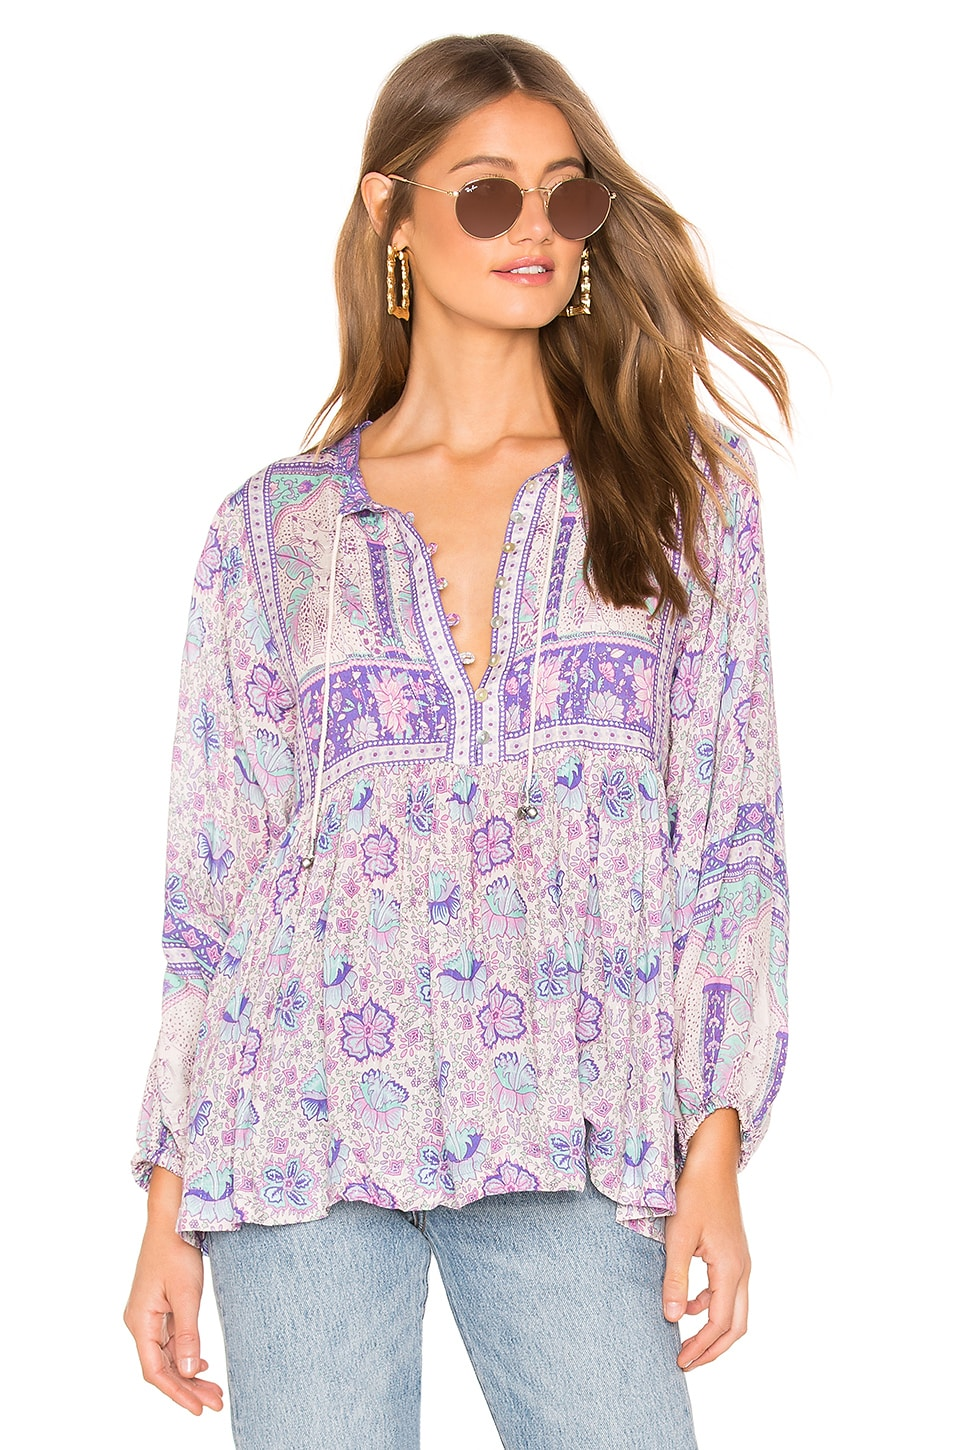 Spell & The Gypsy Collective Poinciana Blouse in Lilac